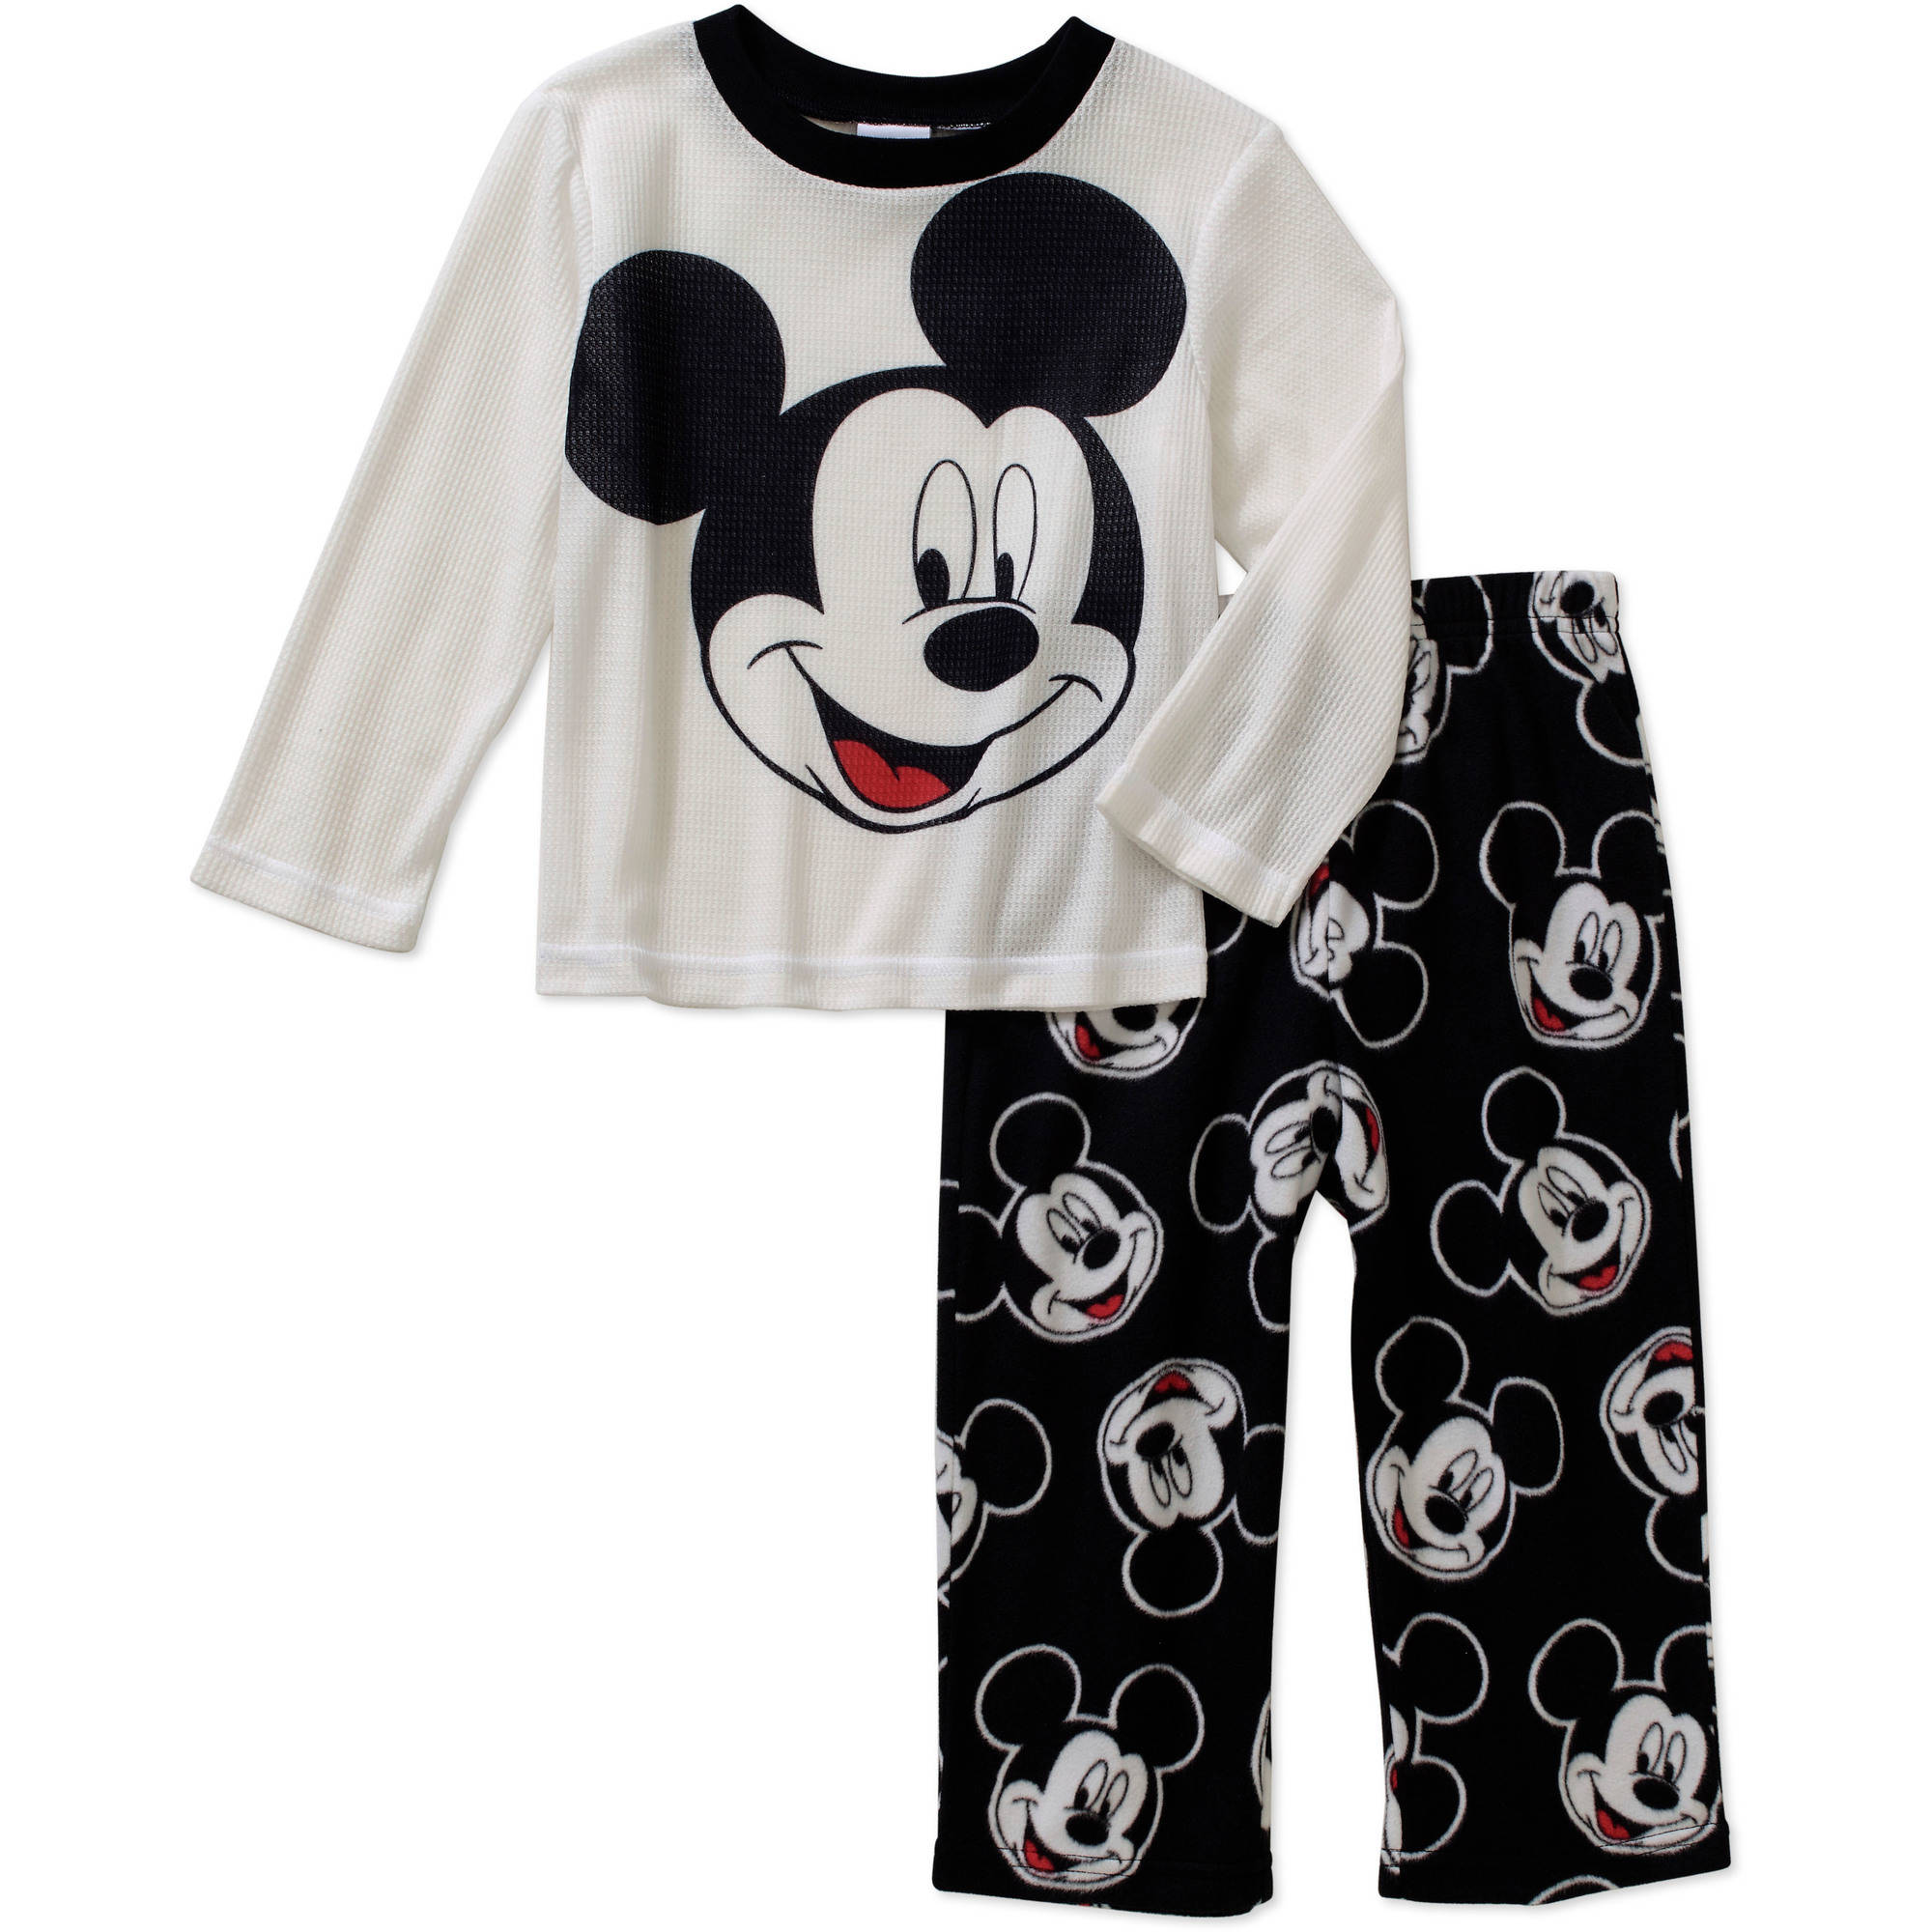 Mickey Mouse Toddler Boys' Long Sleeve Top with Fleece Pants Pajama 2 Piece Set